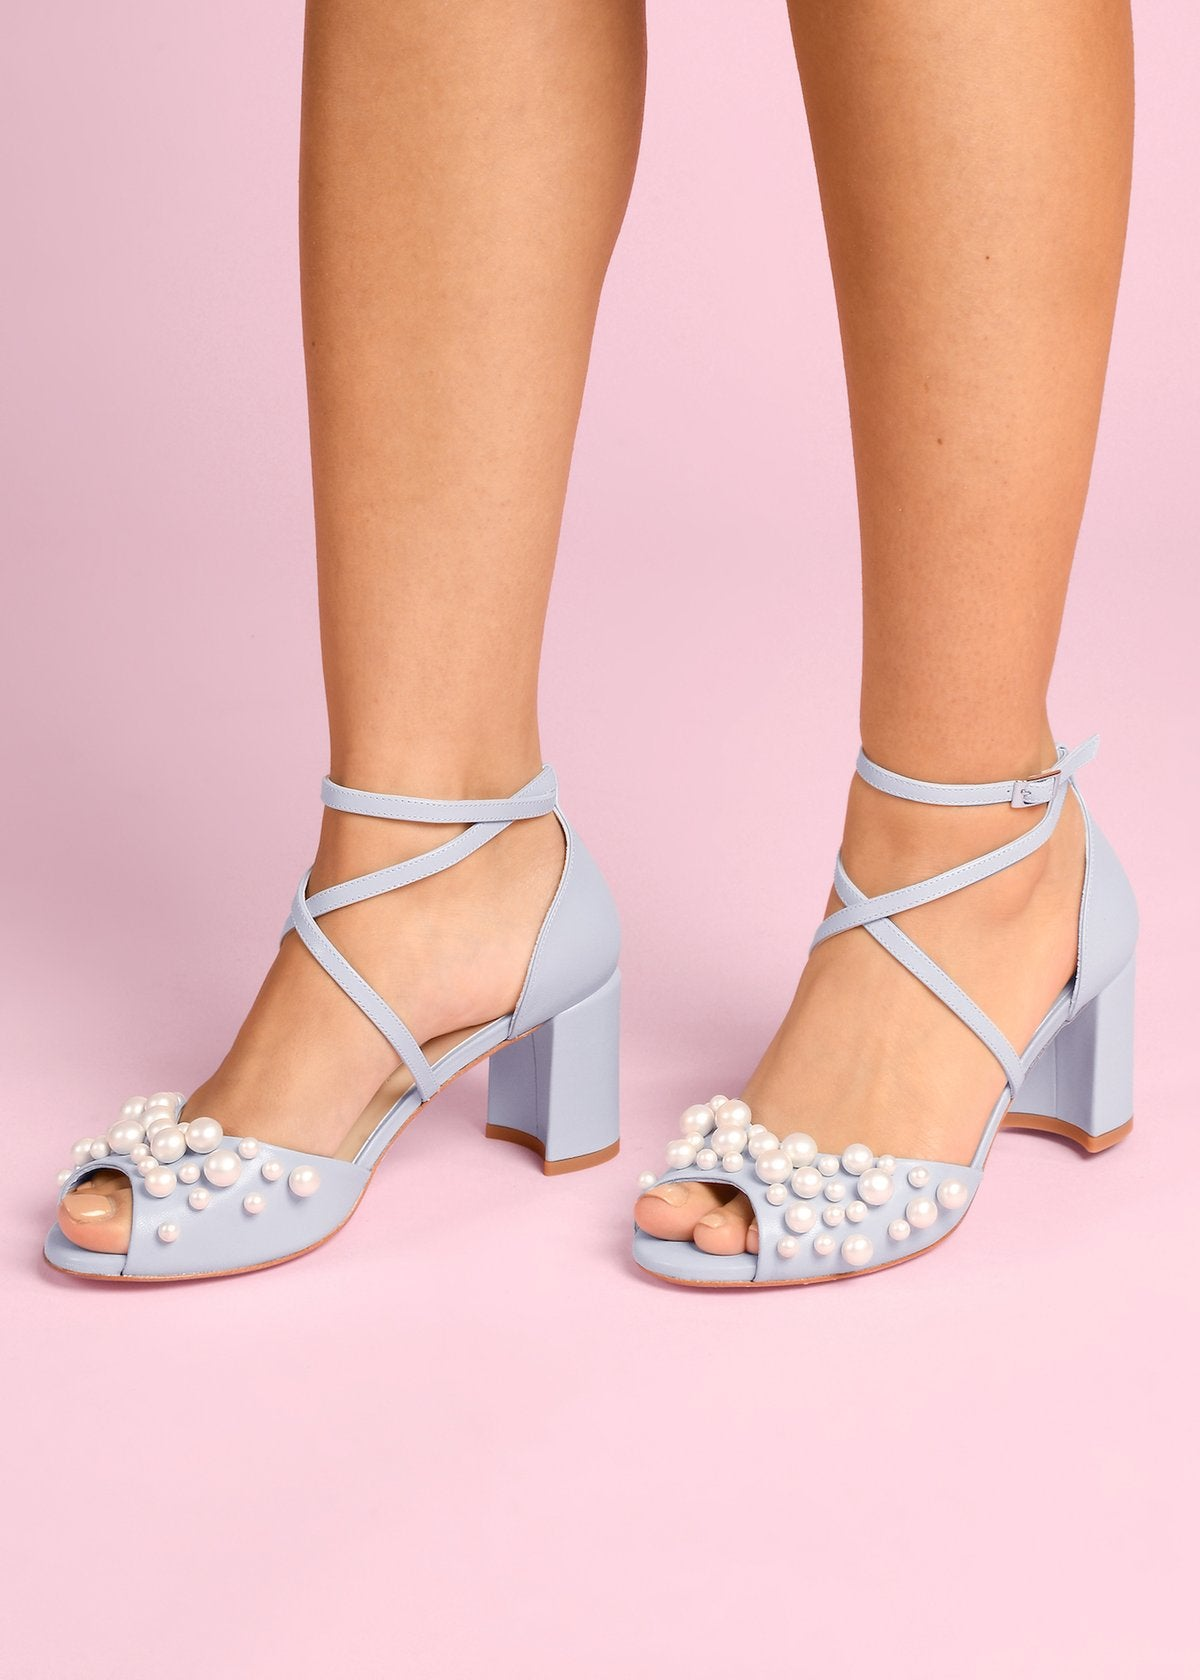 Henri - Pale Blue by Charlotte Mills Wedding Shoes